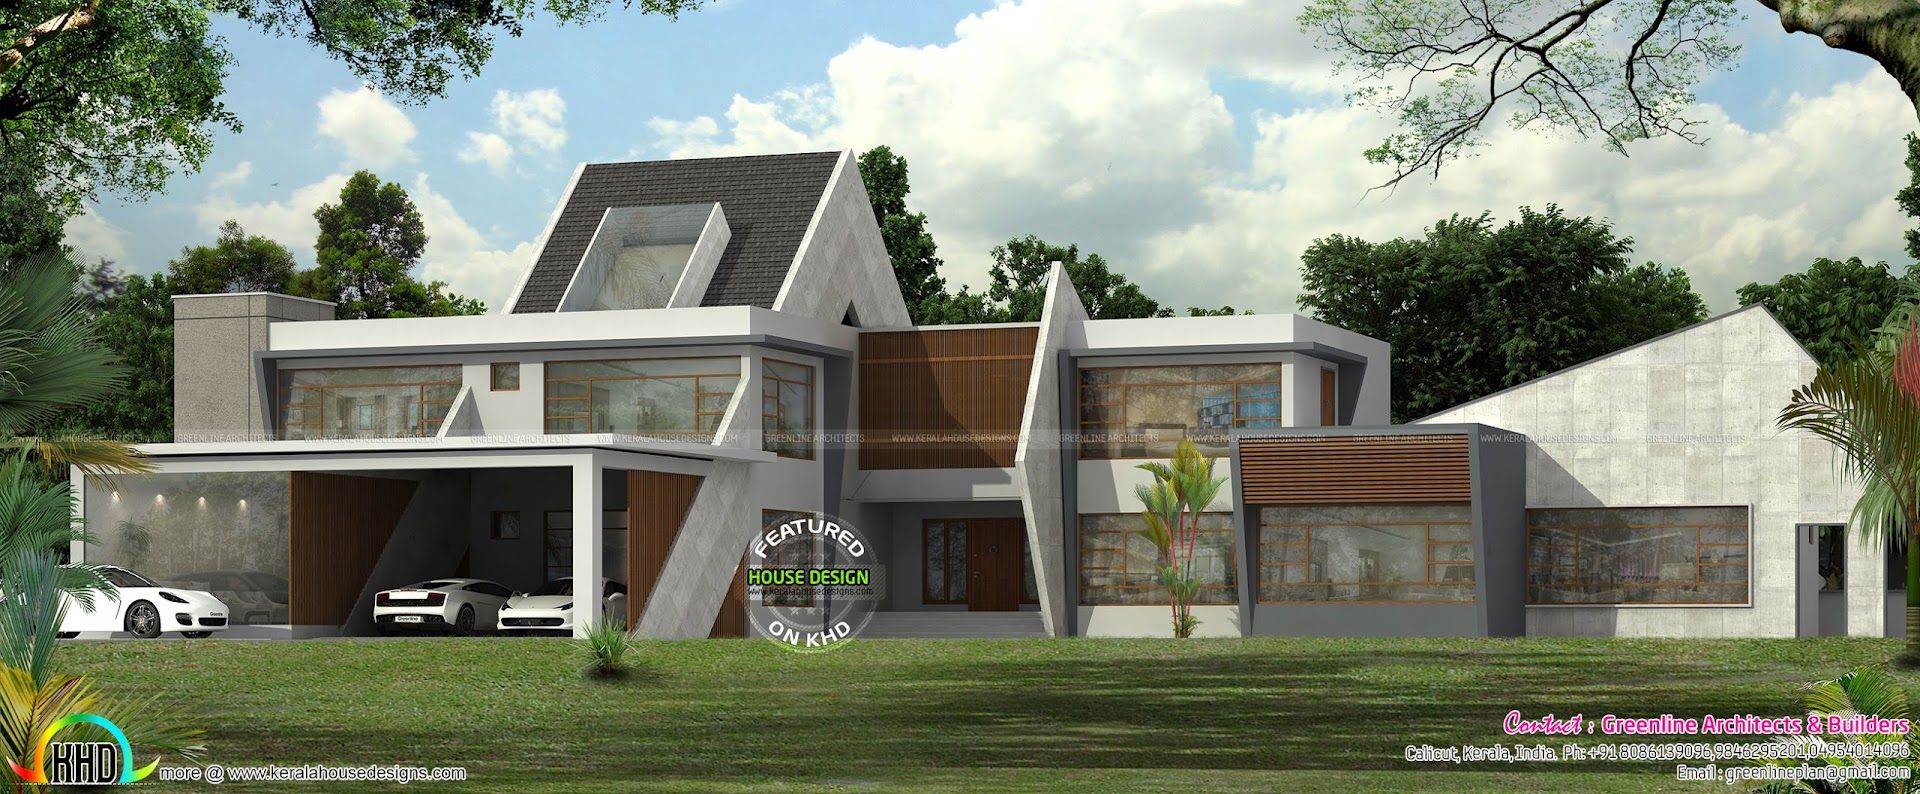 Ultra modern contemporary house in kerala kerala home design and floor plans - Unique house design ...